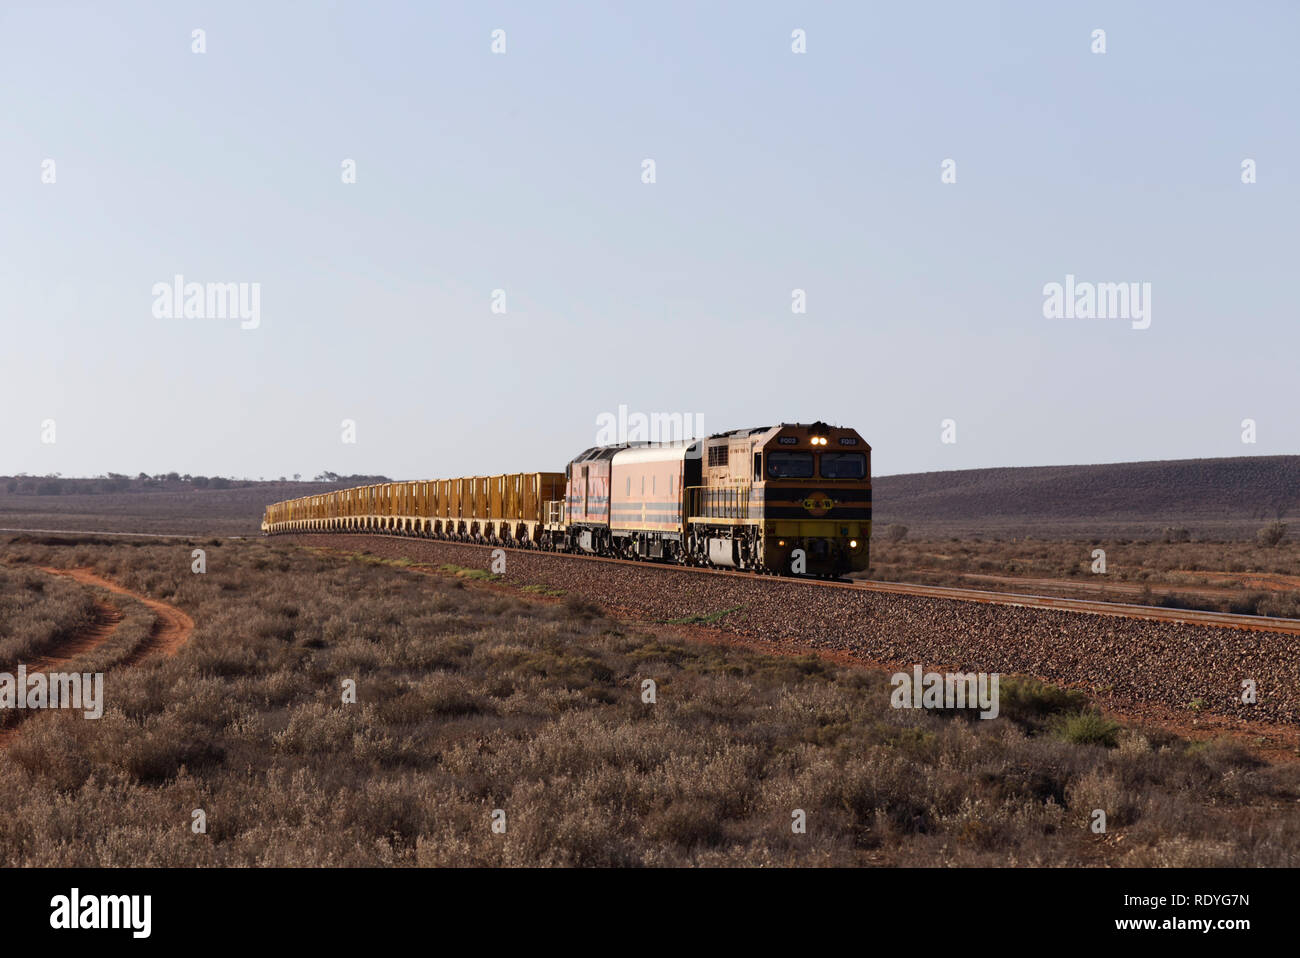 Freight Train Crossing Stock Photos & Freight Train Crossing